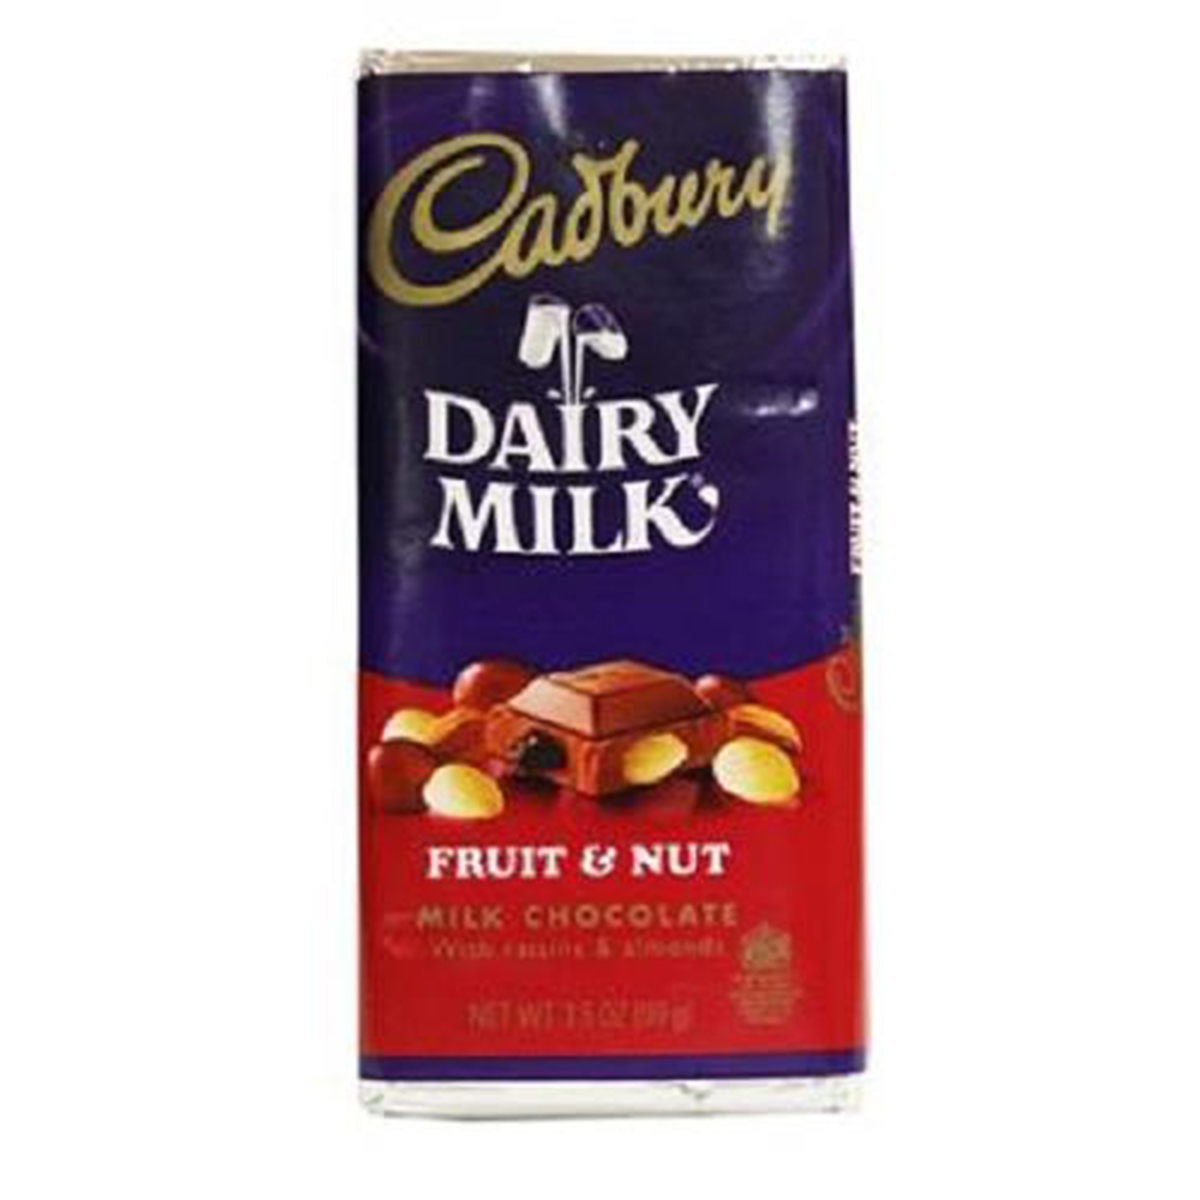 Product Of Cadbury, Fruit & Nut Bar, Count 1 - Chocolate Candy / Grab Varieties & Flavors